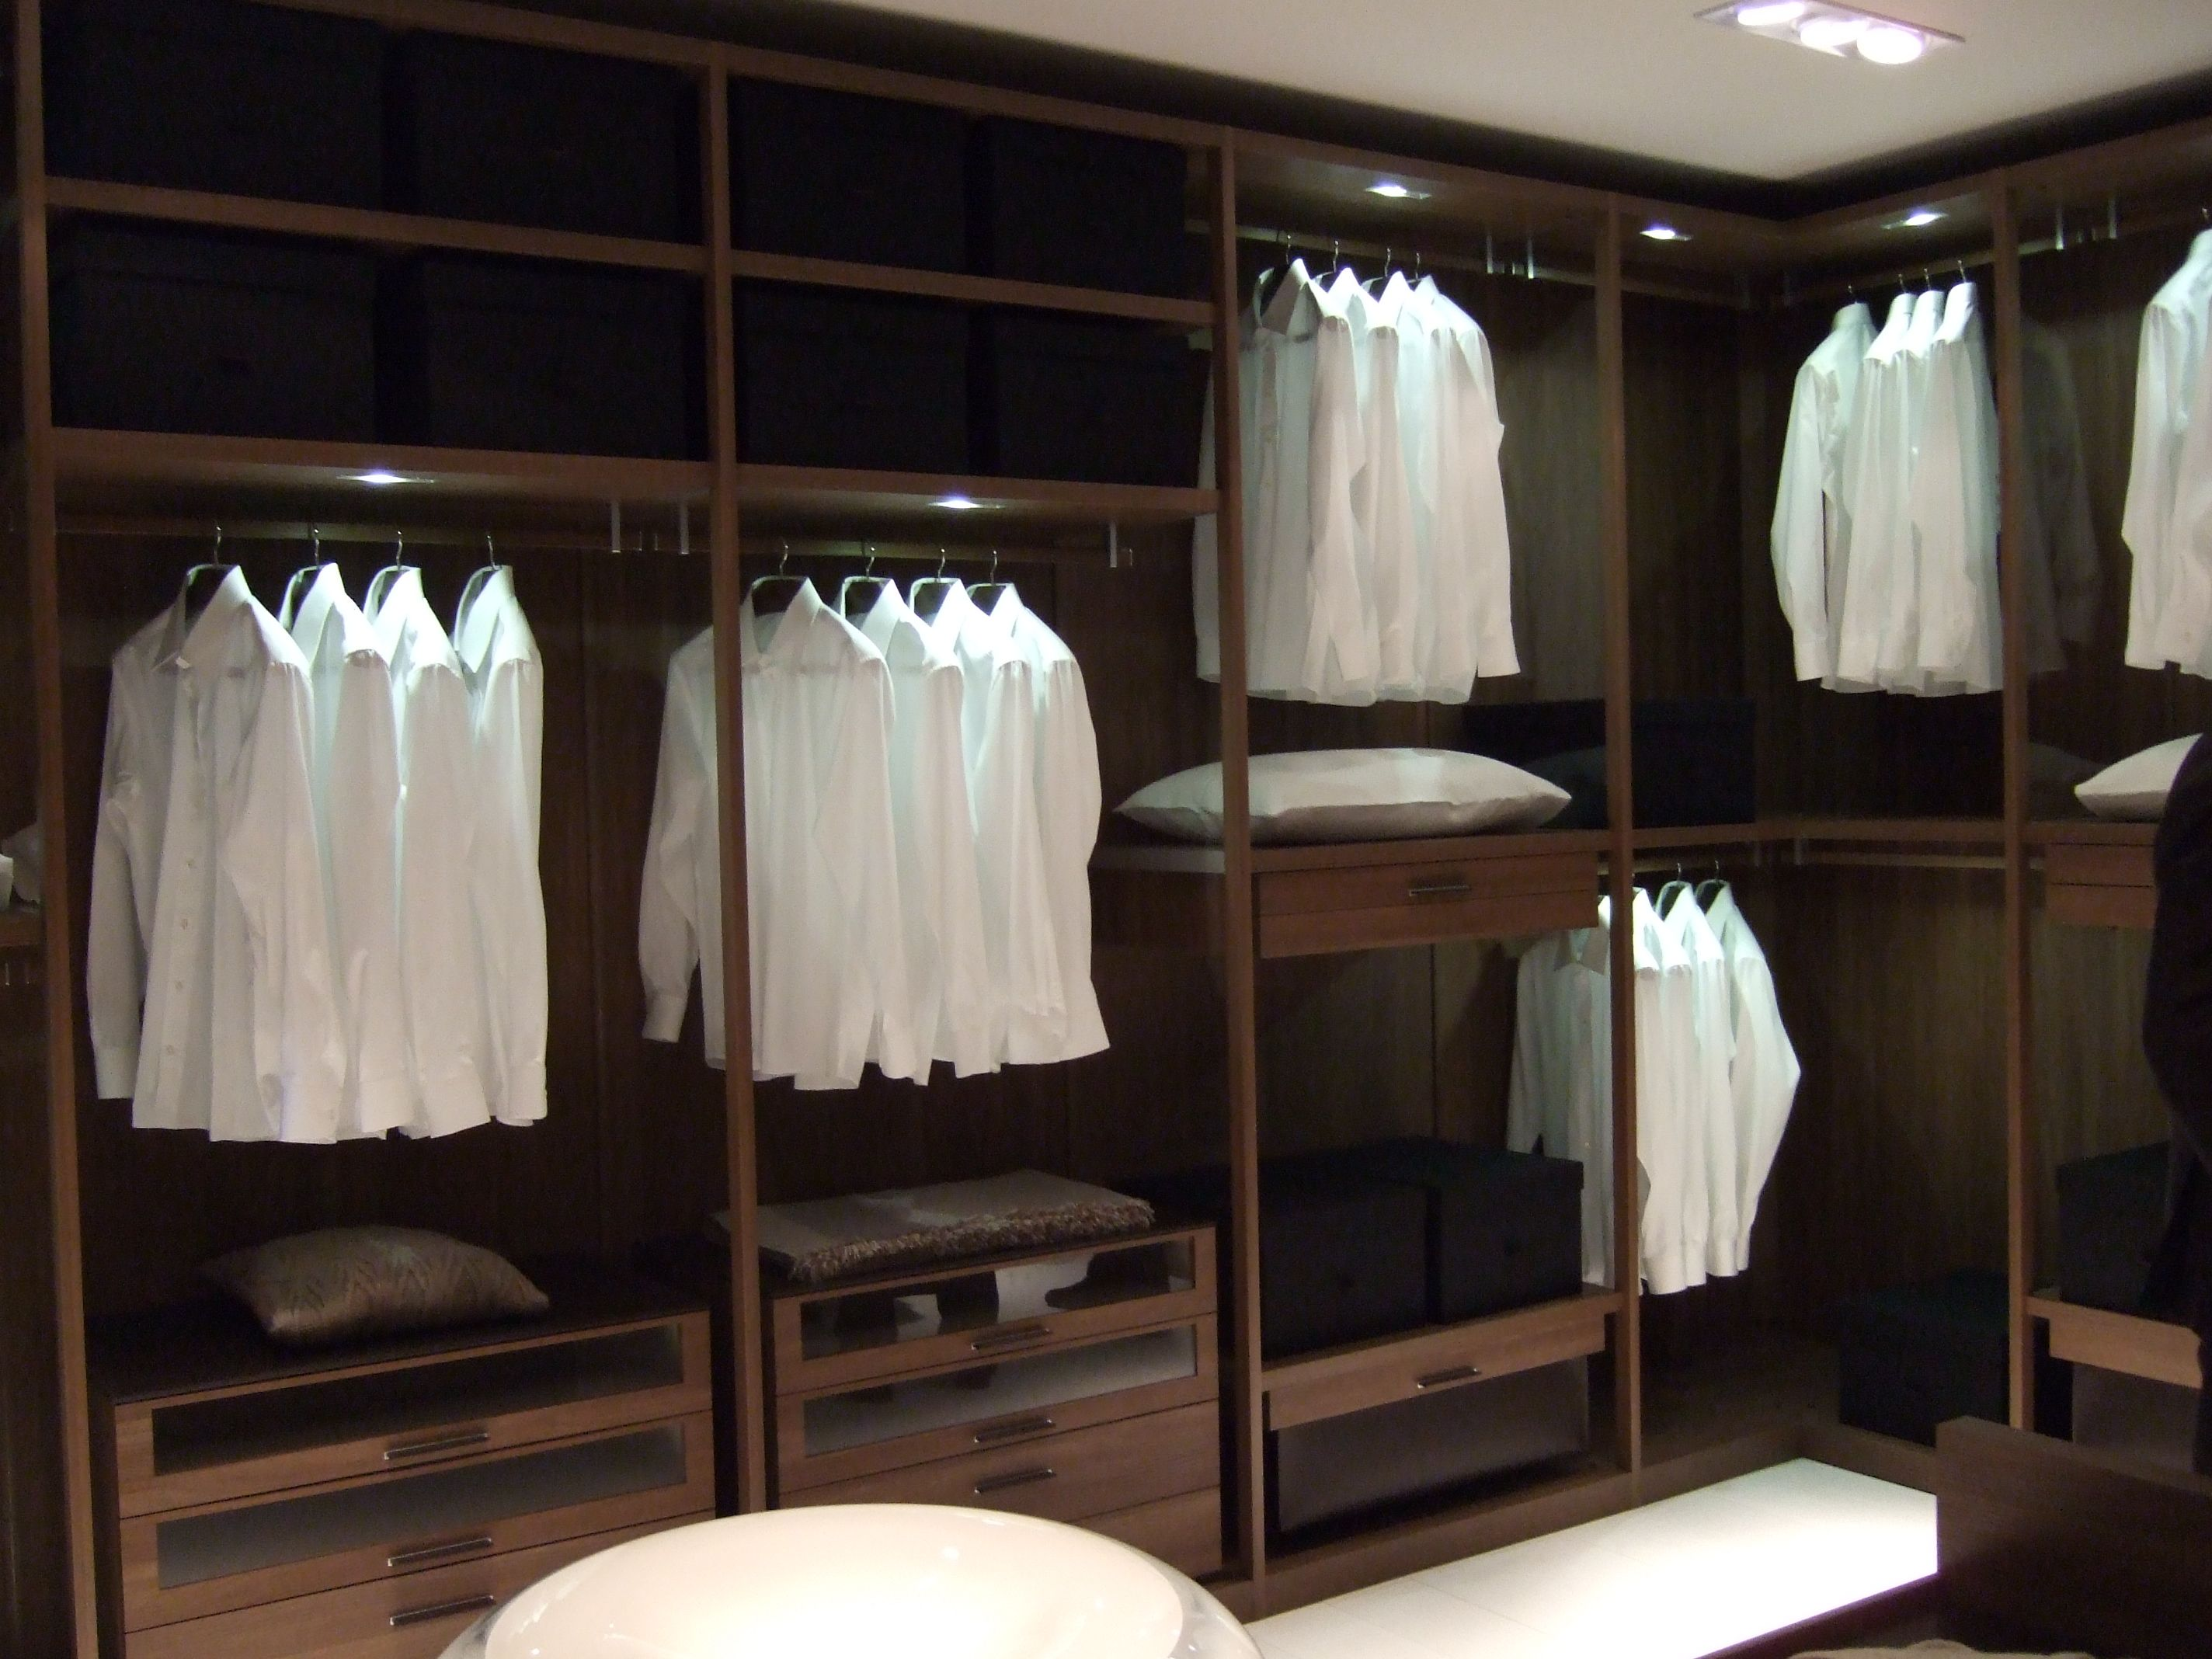 Ideas de decoracion de vestidor estilo contemporaneo - Estilo contemporaneo decoracion ...